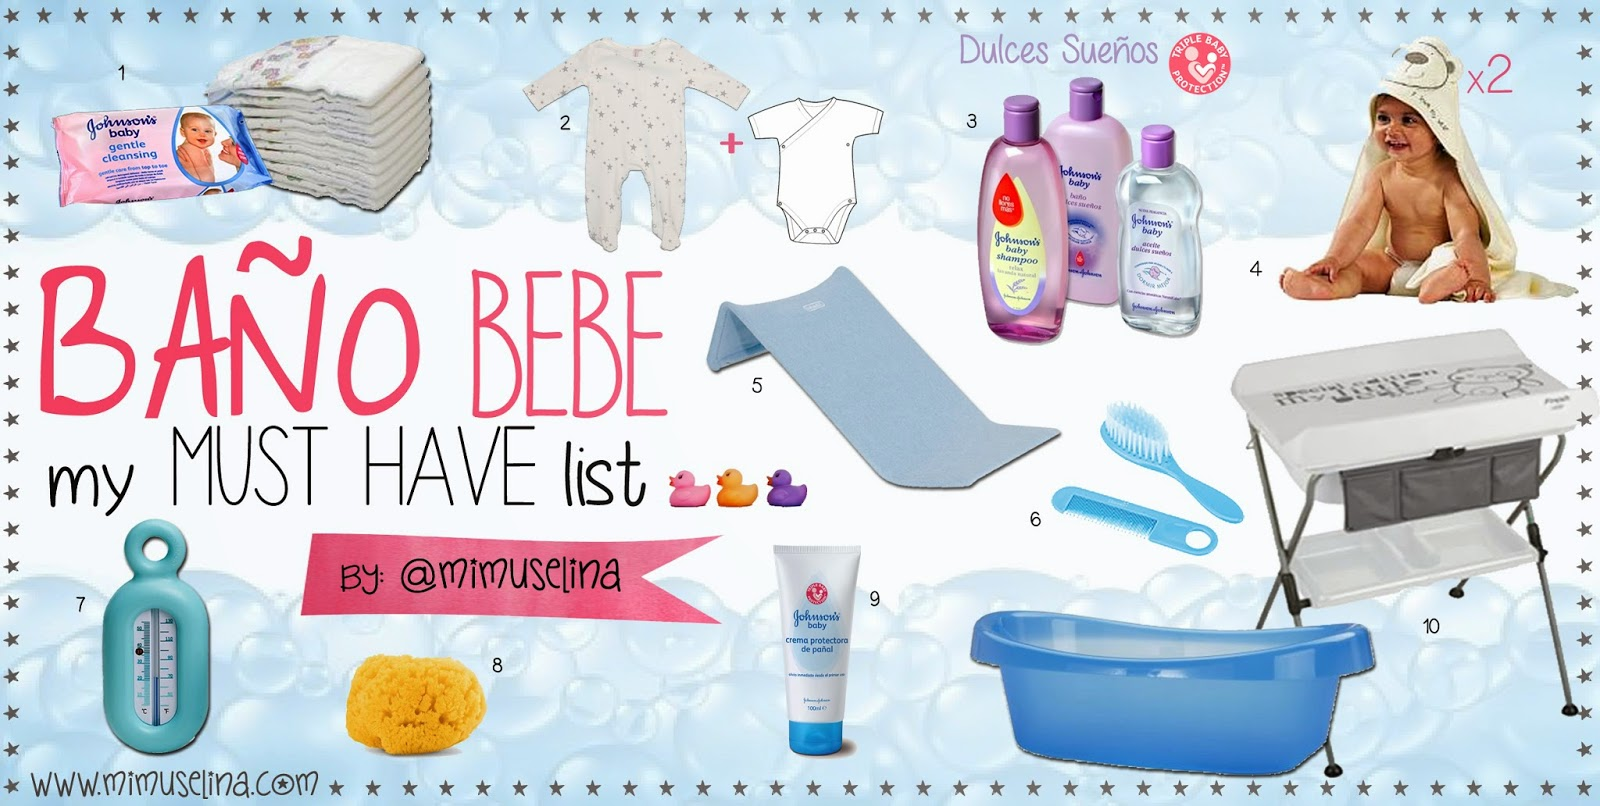 Baño bebe Must Have List